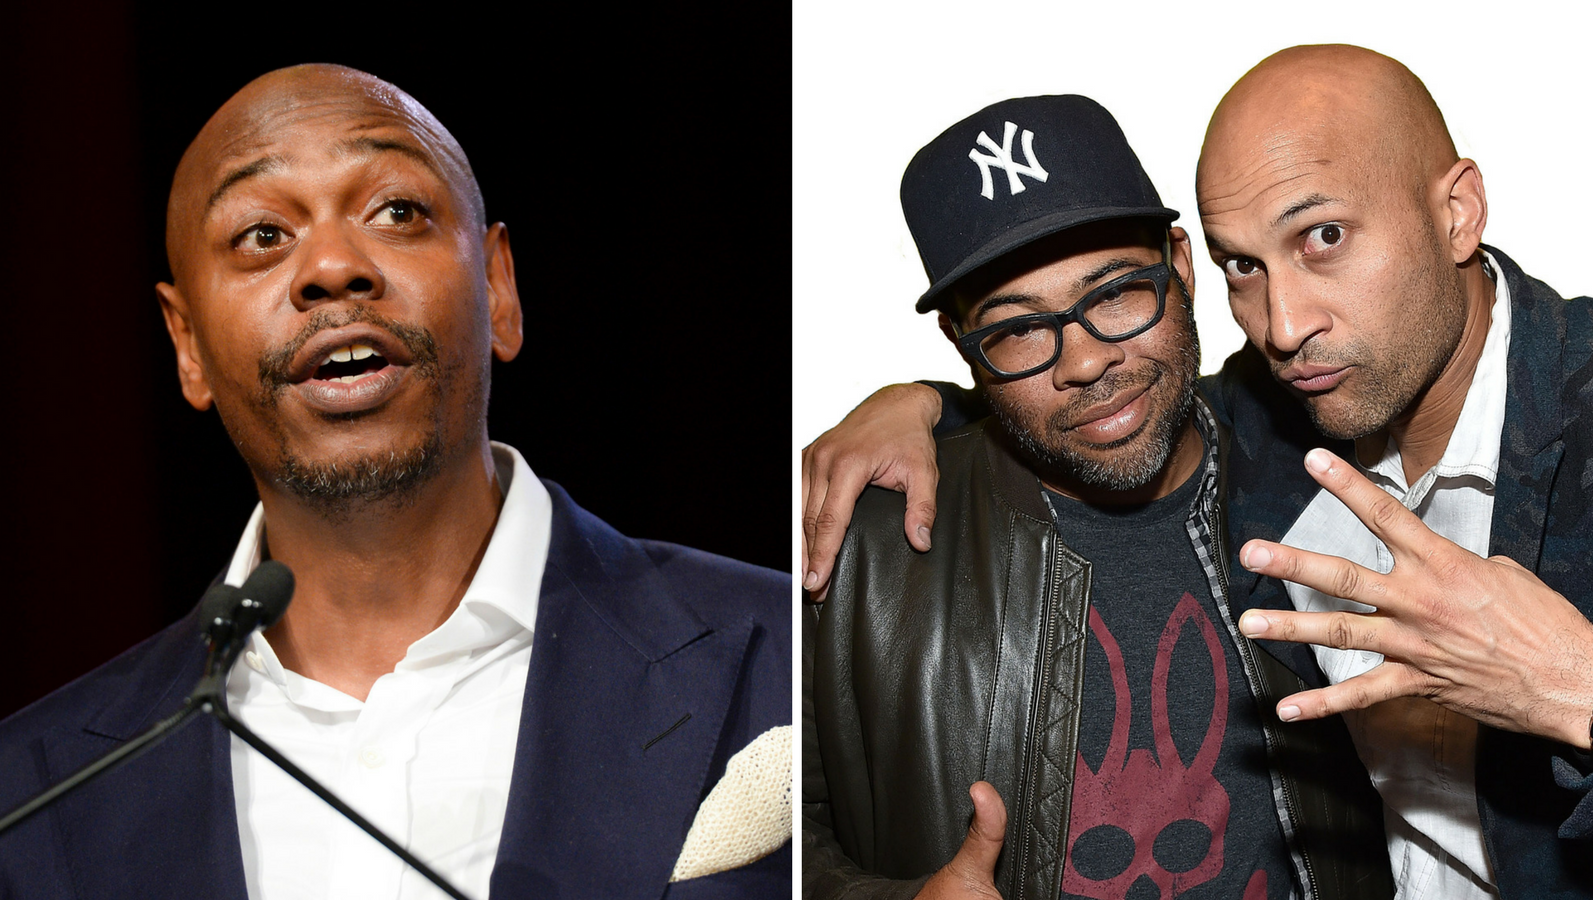 dave chappelle explains why key peele hurts his feelings dave chappelle explains why key